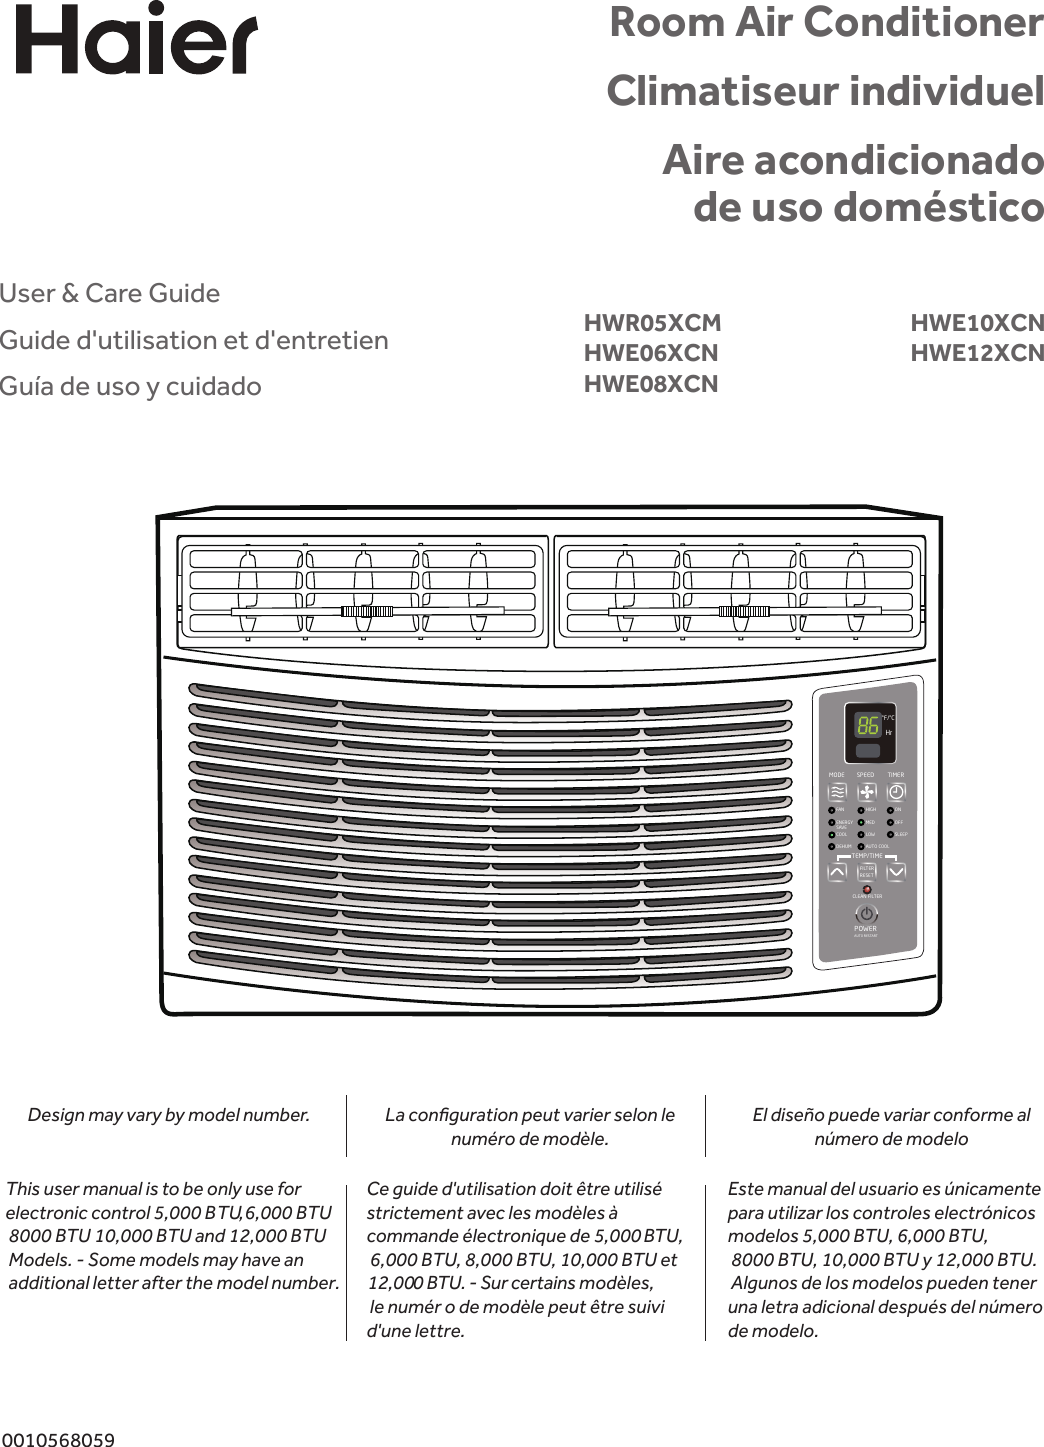 Haier Air Conditioner Hwe06Xcn Users Manual on